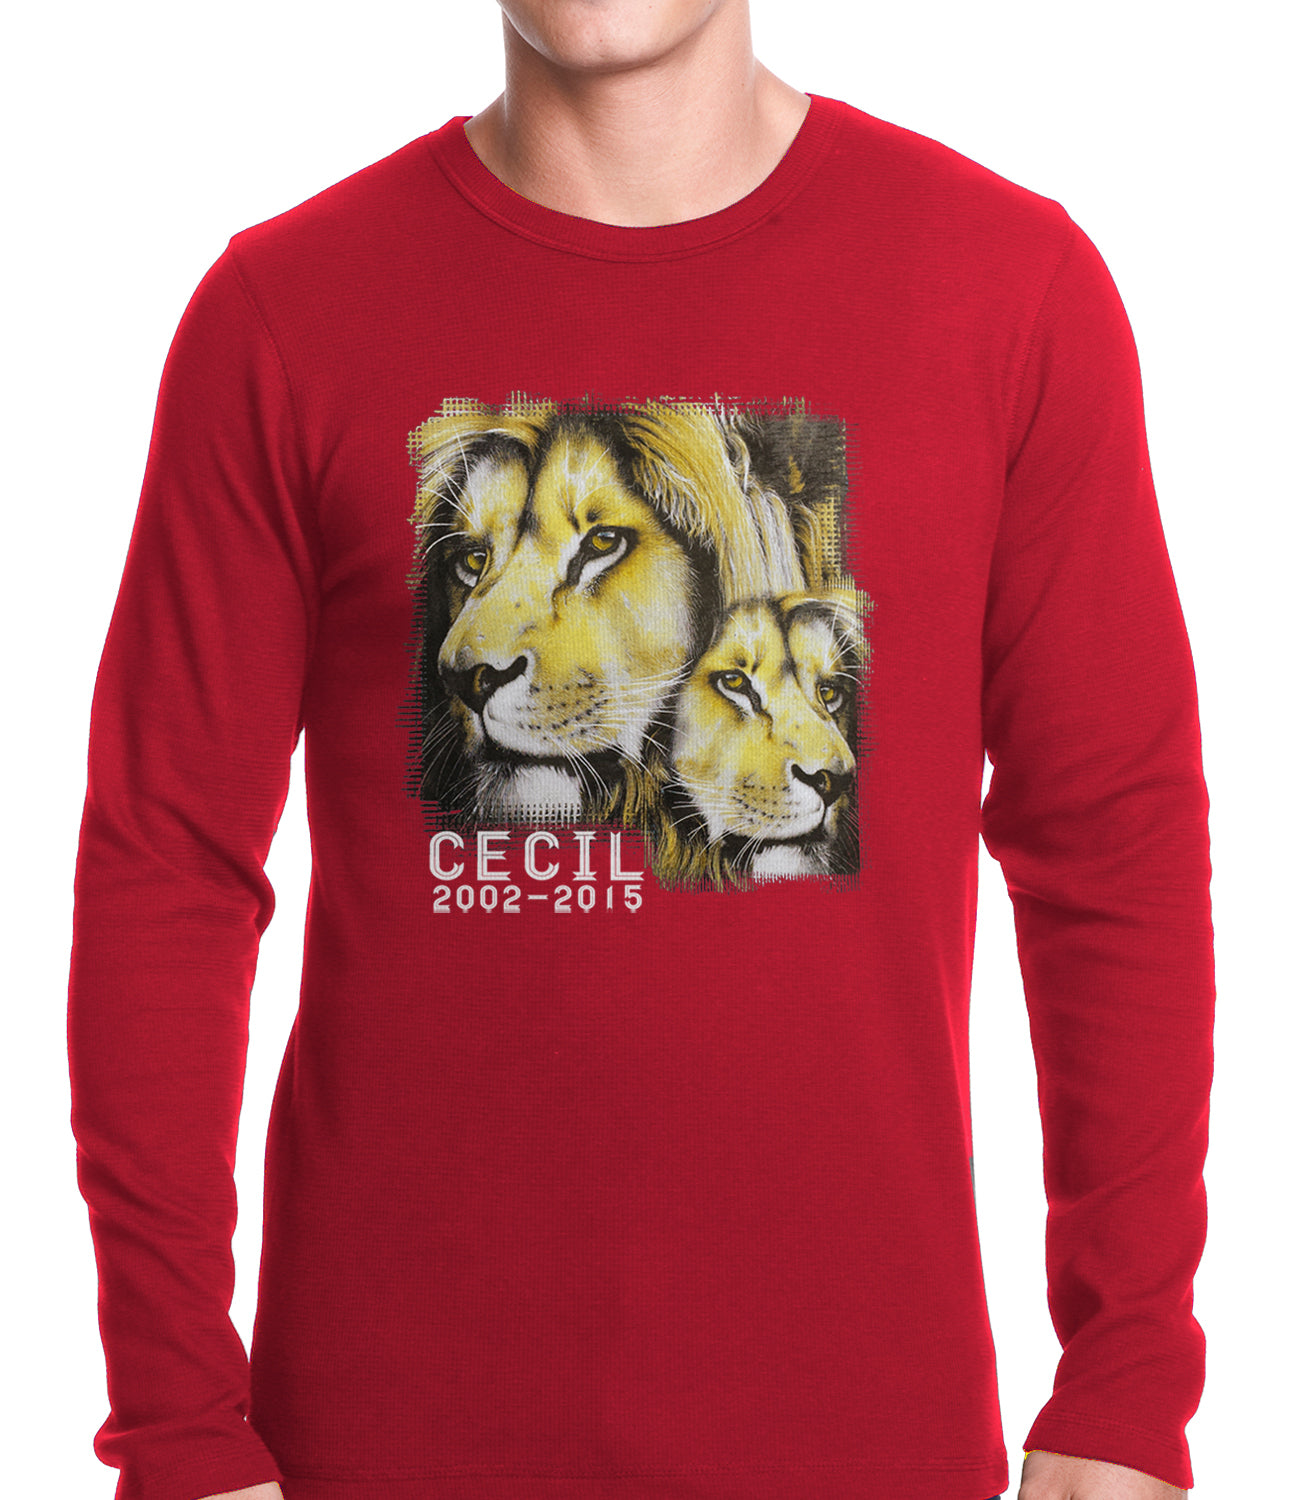 Cecil The Lion Tribute Shirt Thermal Shirt